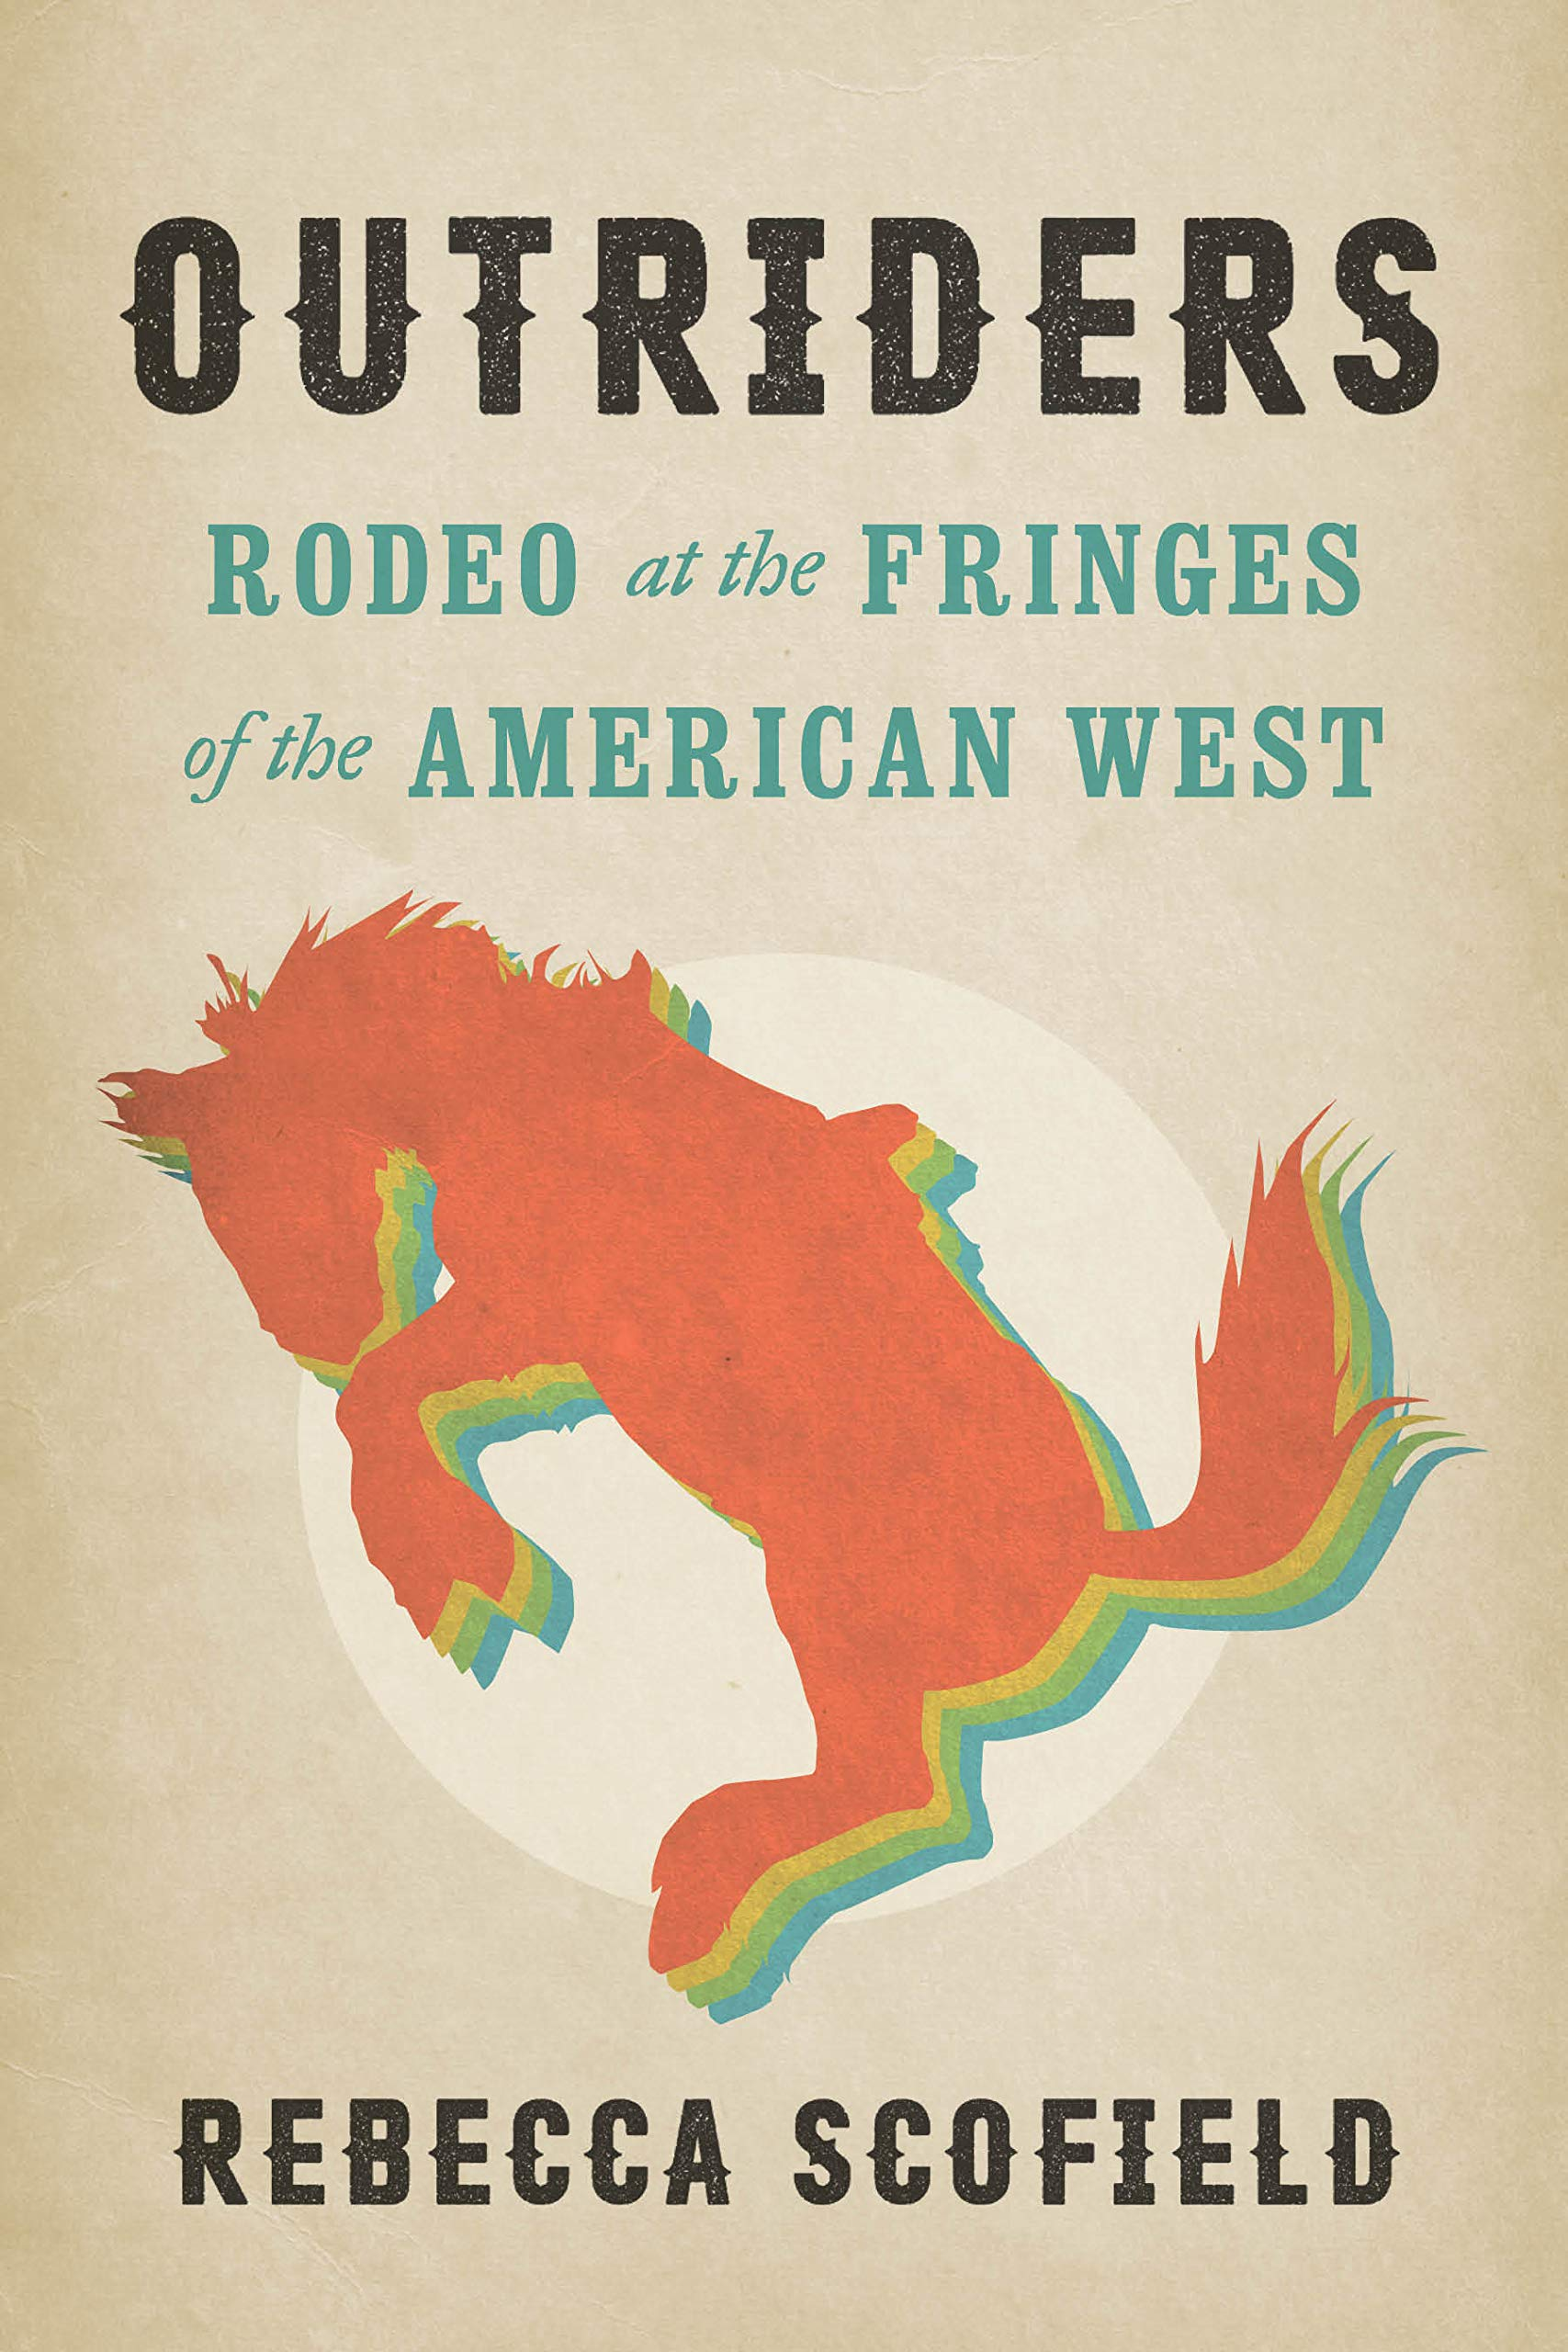 Outriders: Rodeo at the Fringes of the American West by University of Washington Press